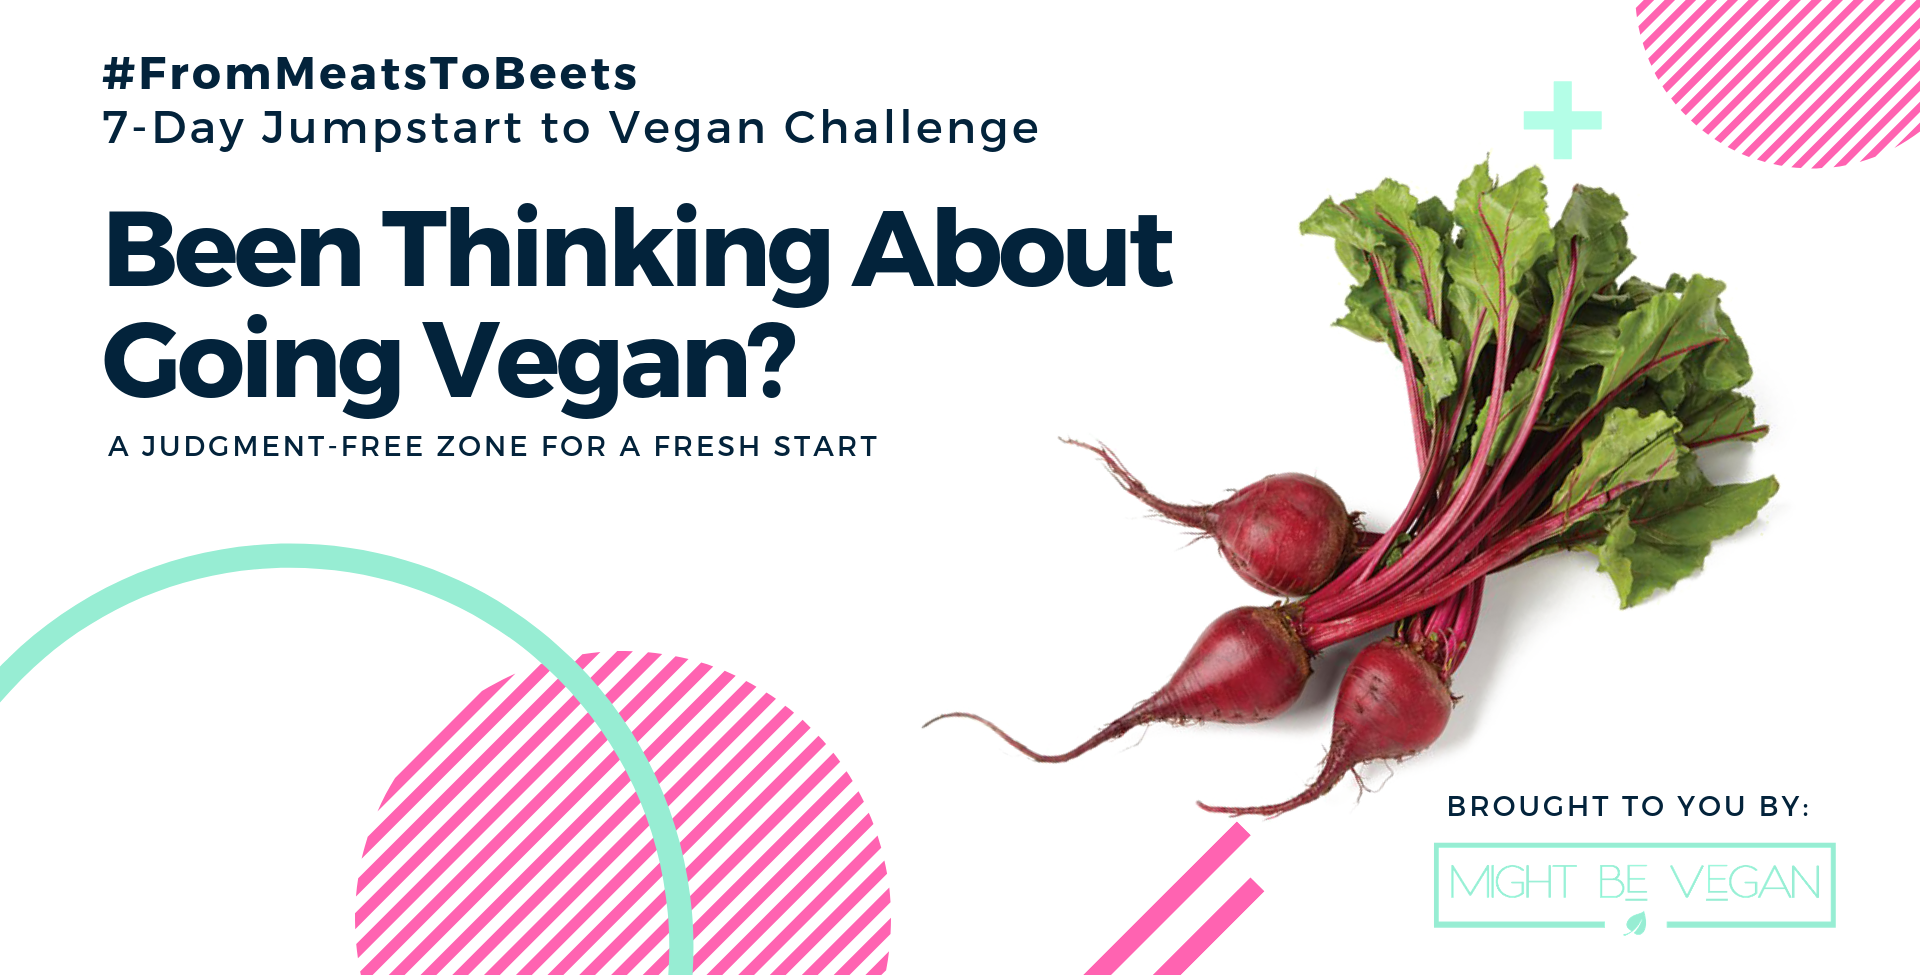 Learn more about the challenge   here  .